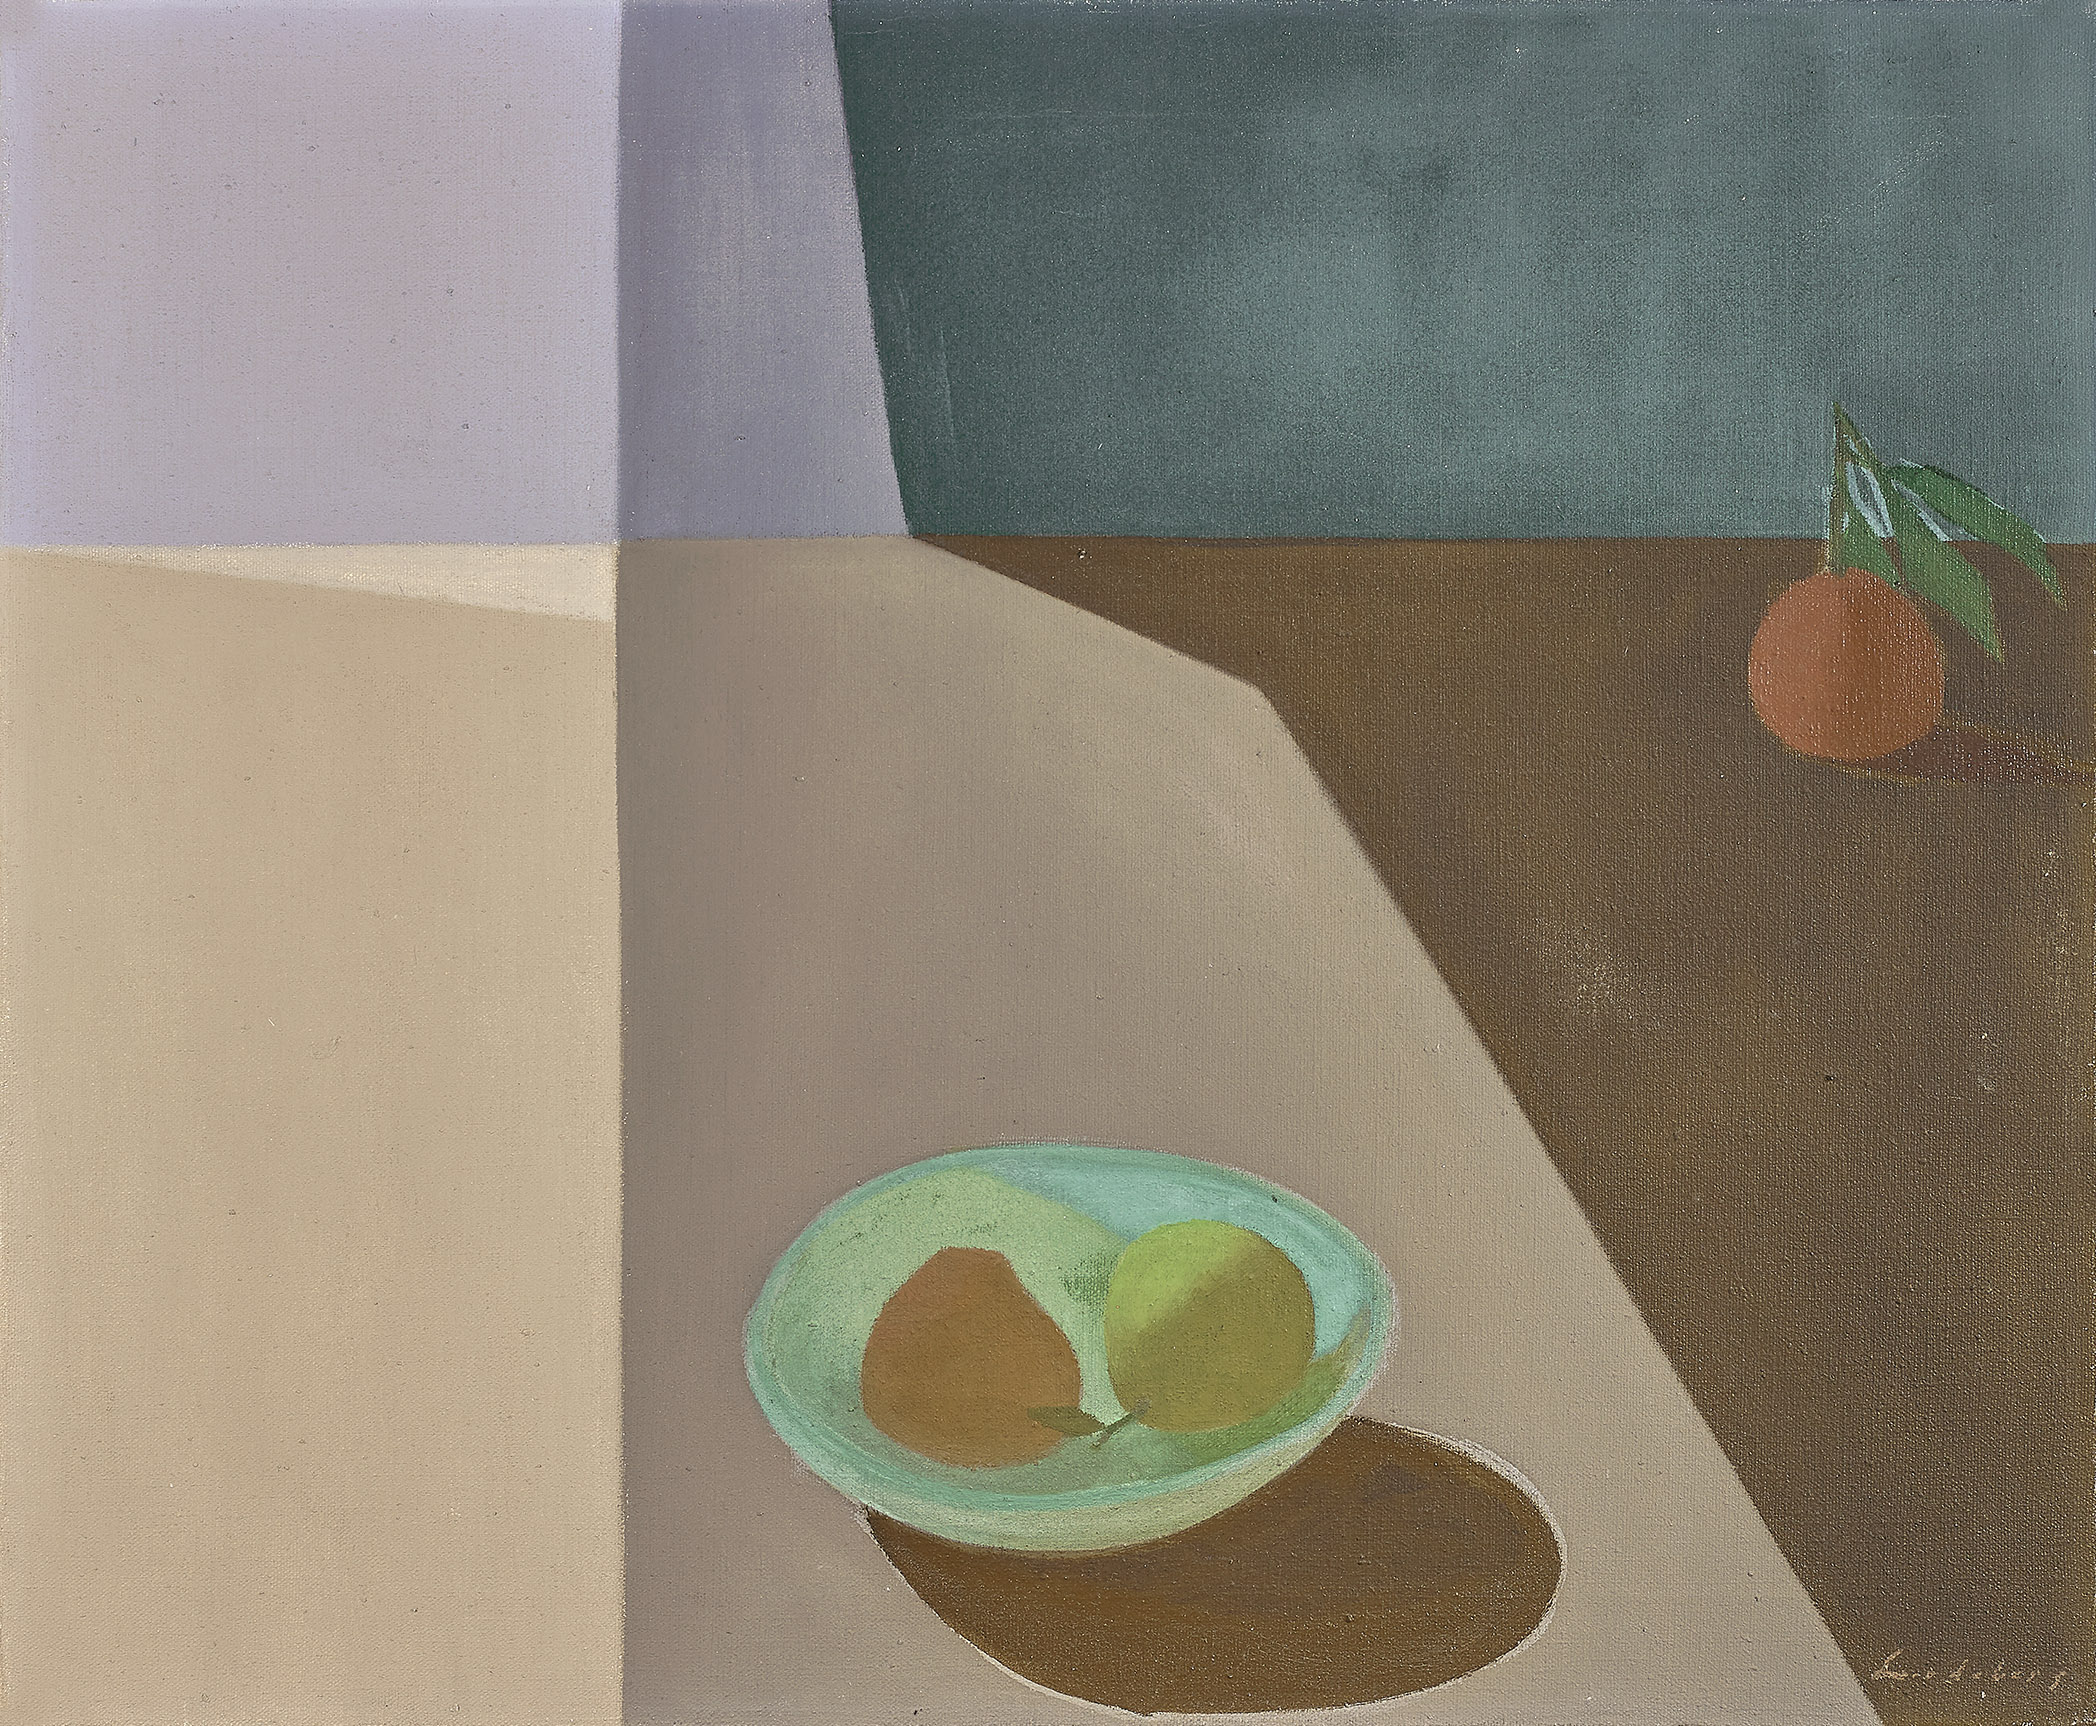 Fruit in Space , 1953  oil on canvas 20 x 24 inches; 50.8 x 61 centimeters  $40,000